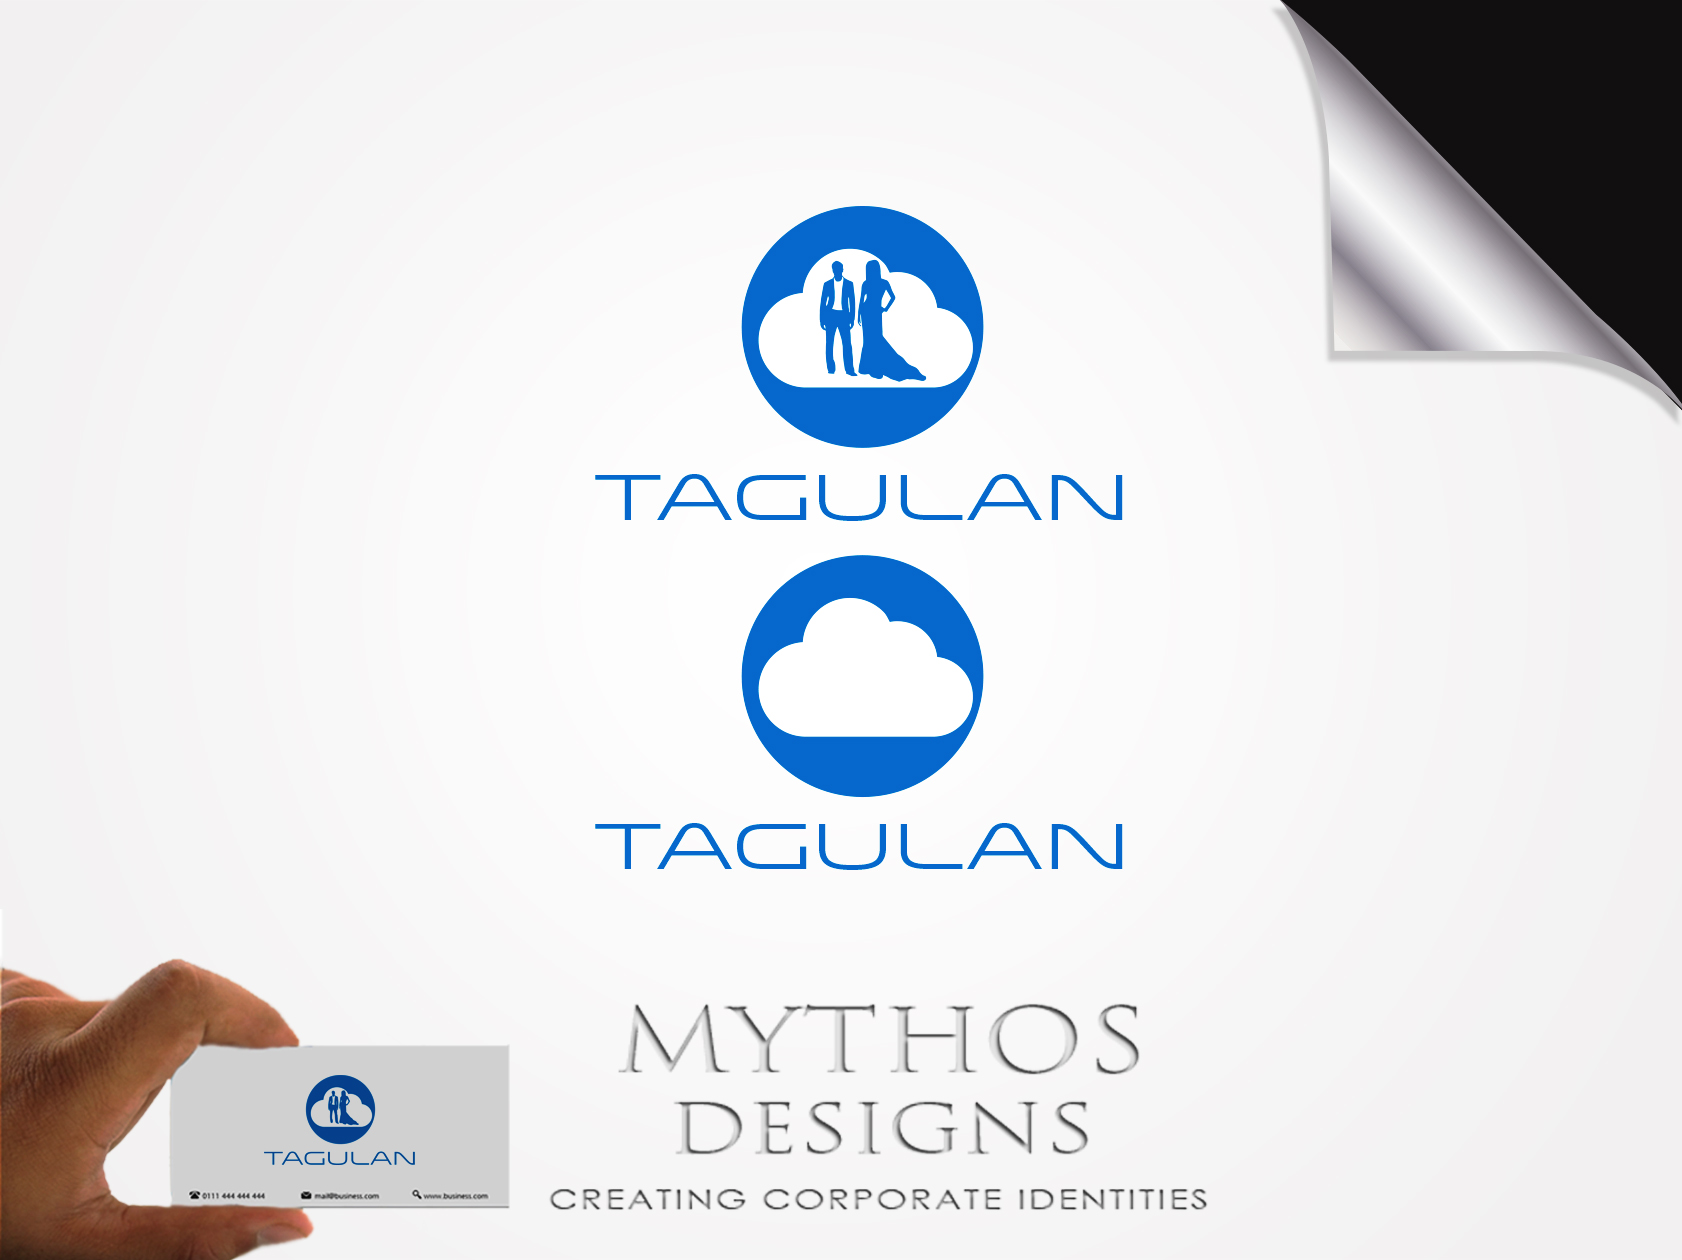 Logo Design by Mythos Designs - Entry No. 101 in the Logo Design Contest Unique Logo Design Wanted for Tagulan.